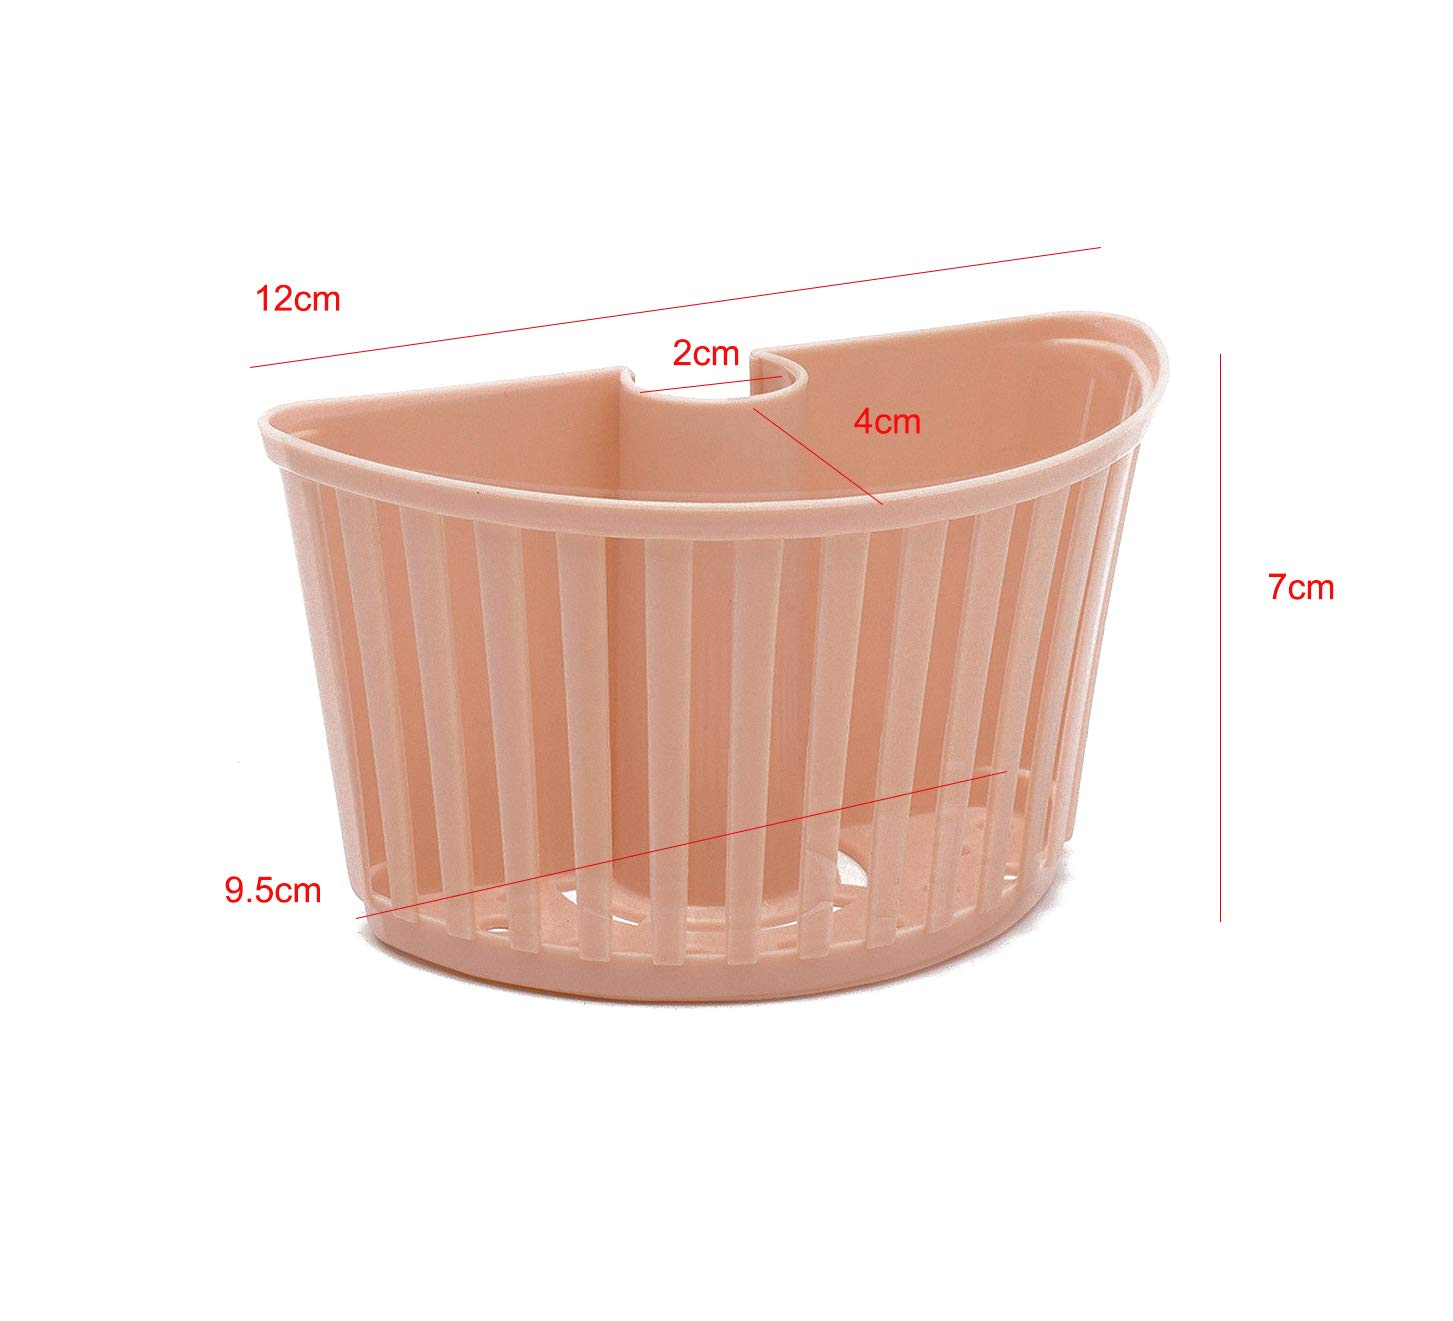 Pipes To The Card Slot Sponge Admit Stand Debris From Drain Water Rack Kitchen Supplies Water Tanks Plastic Hanging Basket by huici (Image #2)